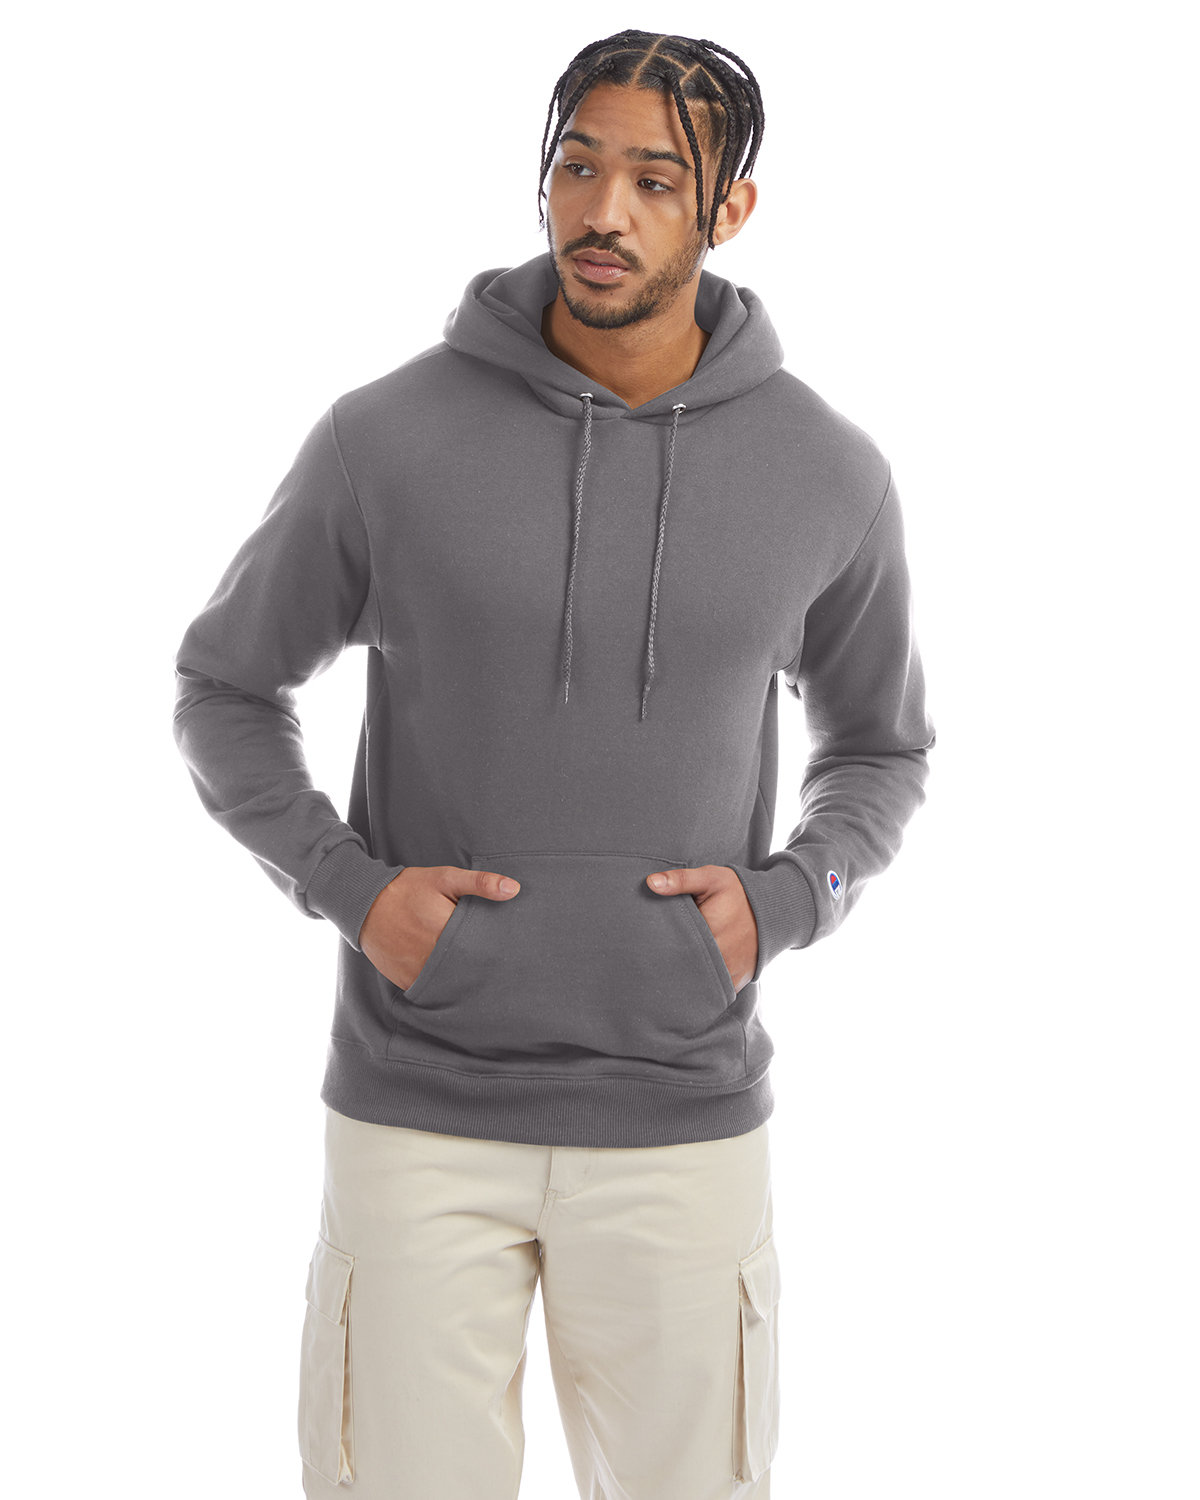 Champion Adult Double Dry Eco® Pullover Hooded Sweatshirt STONE GRAY